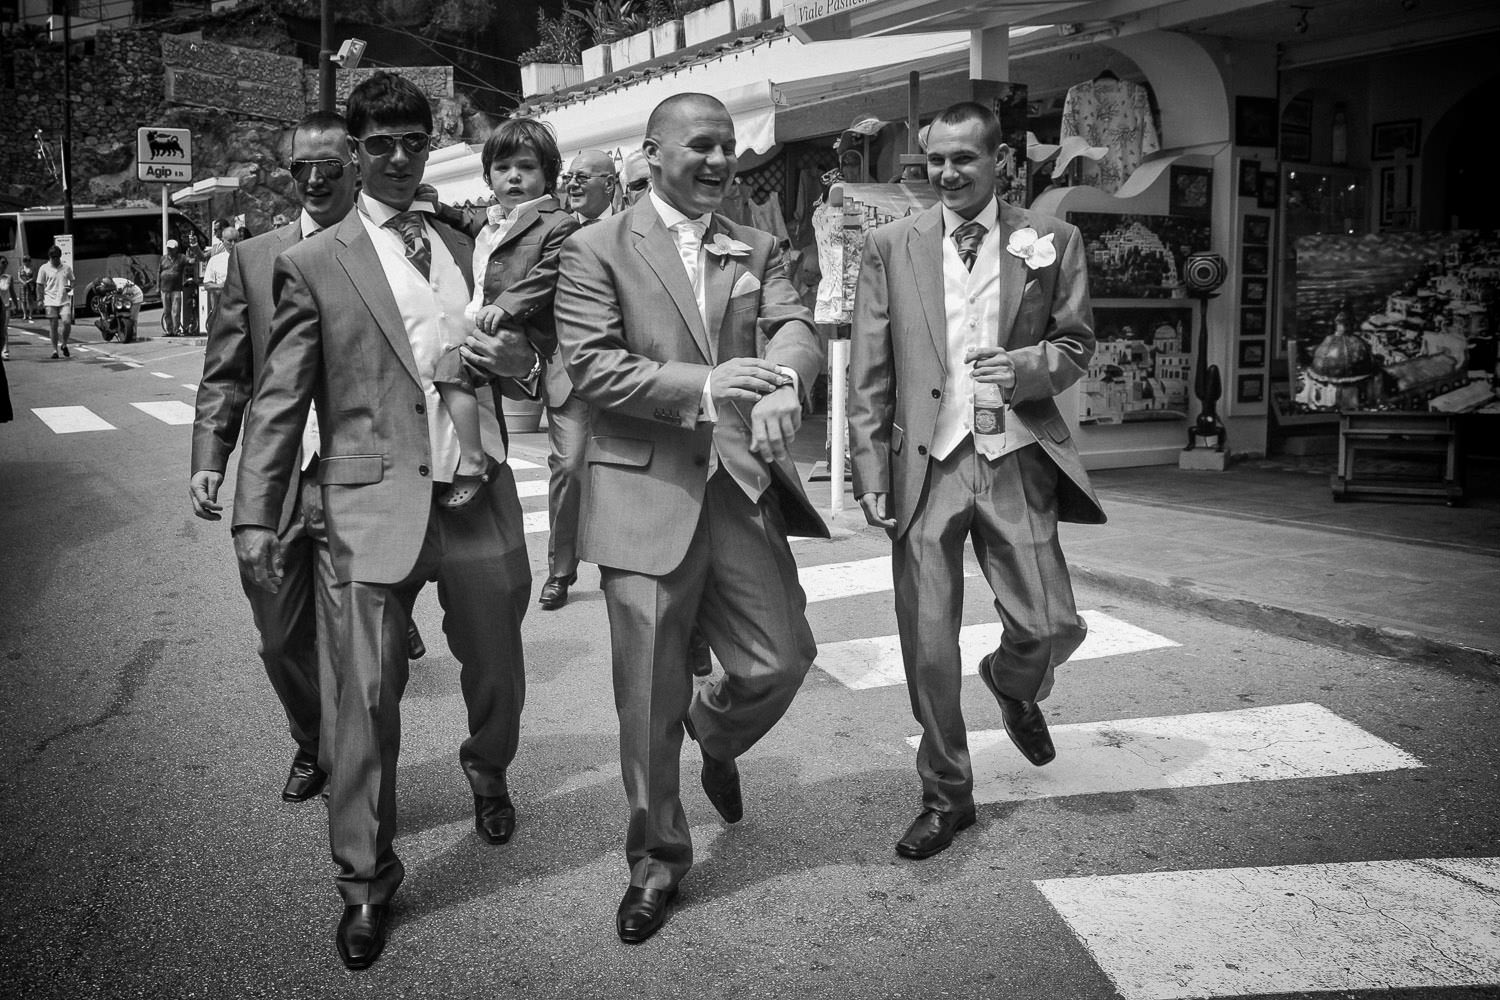 Groom and ushers walking through the streets of Positano